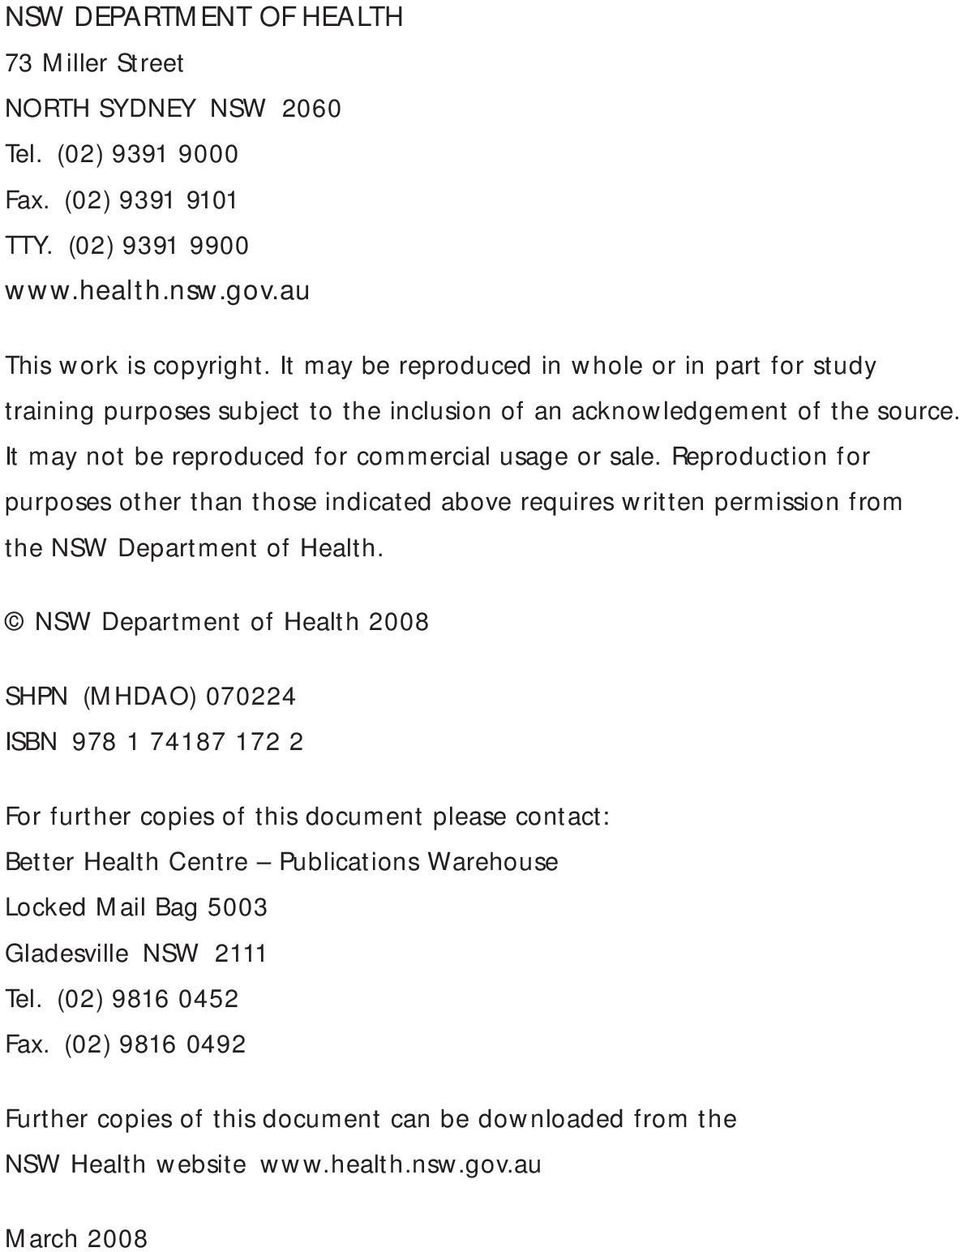 Reproduction for purposes other than those indicated above requires written permission from the NSW Department of Health.